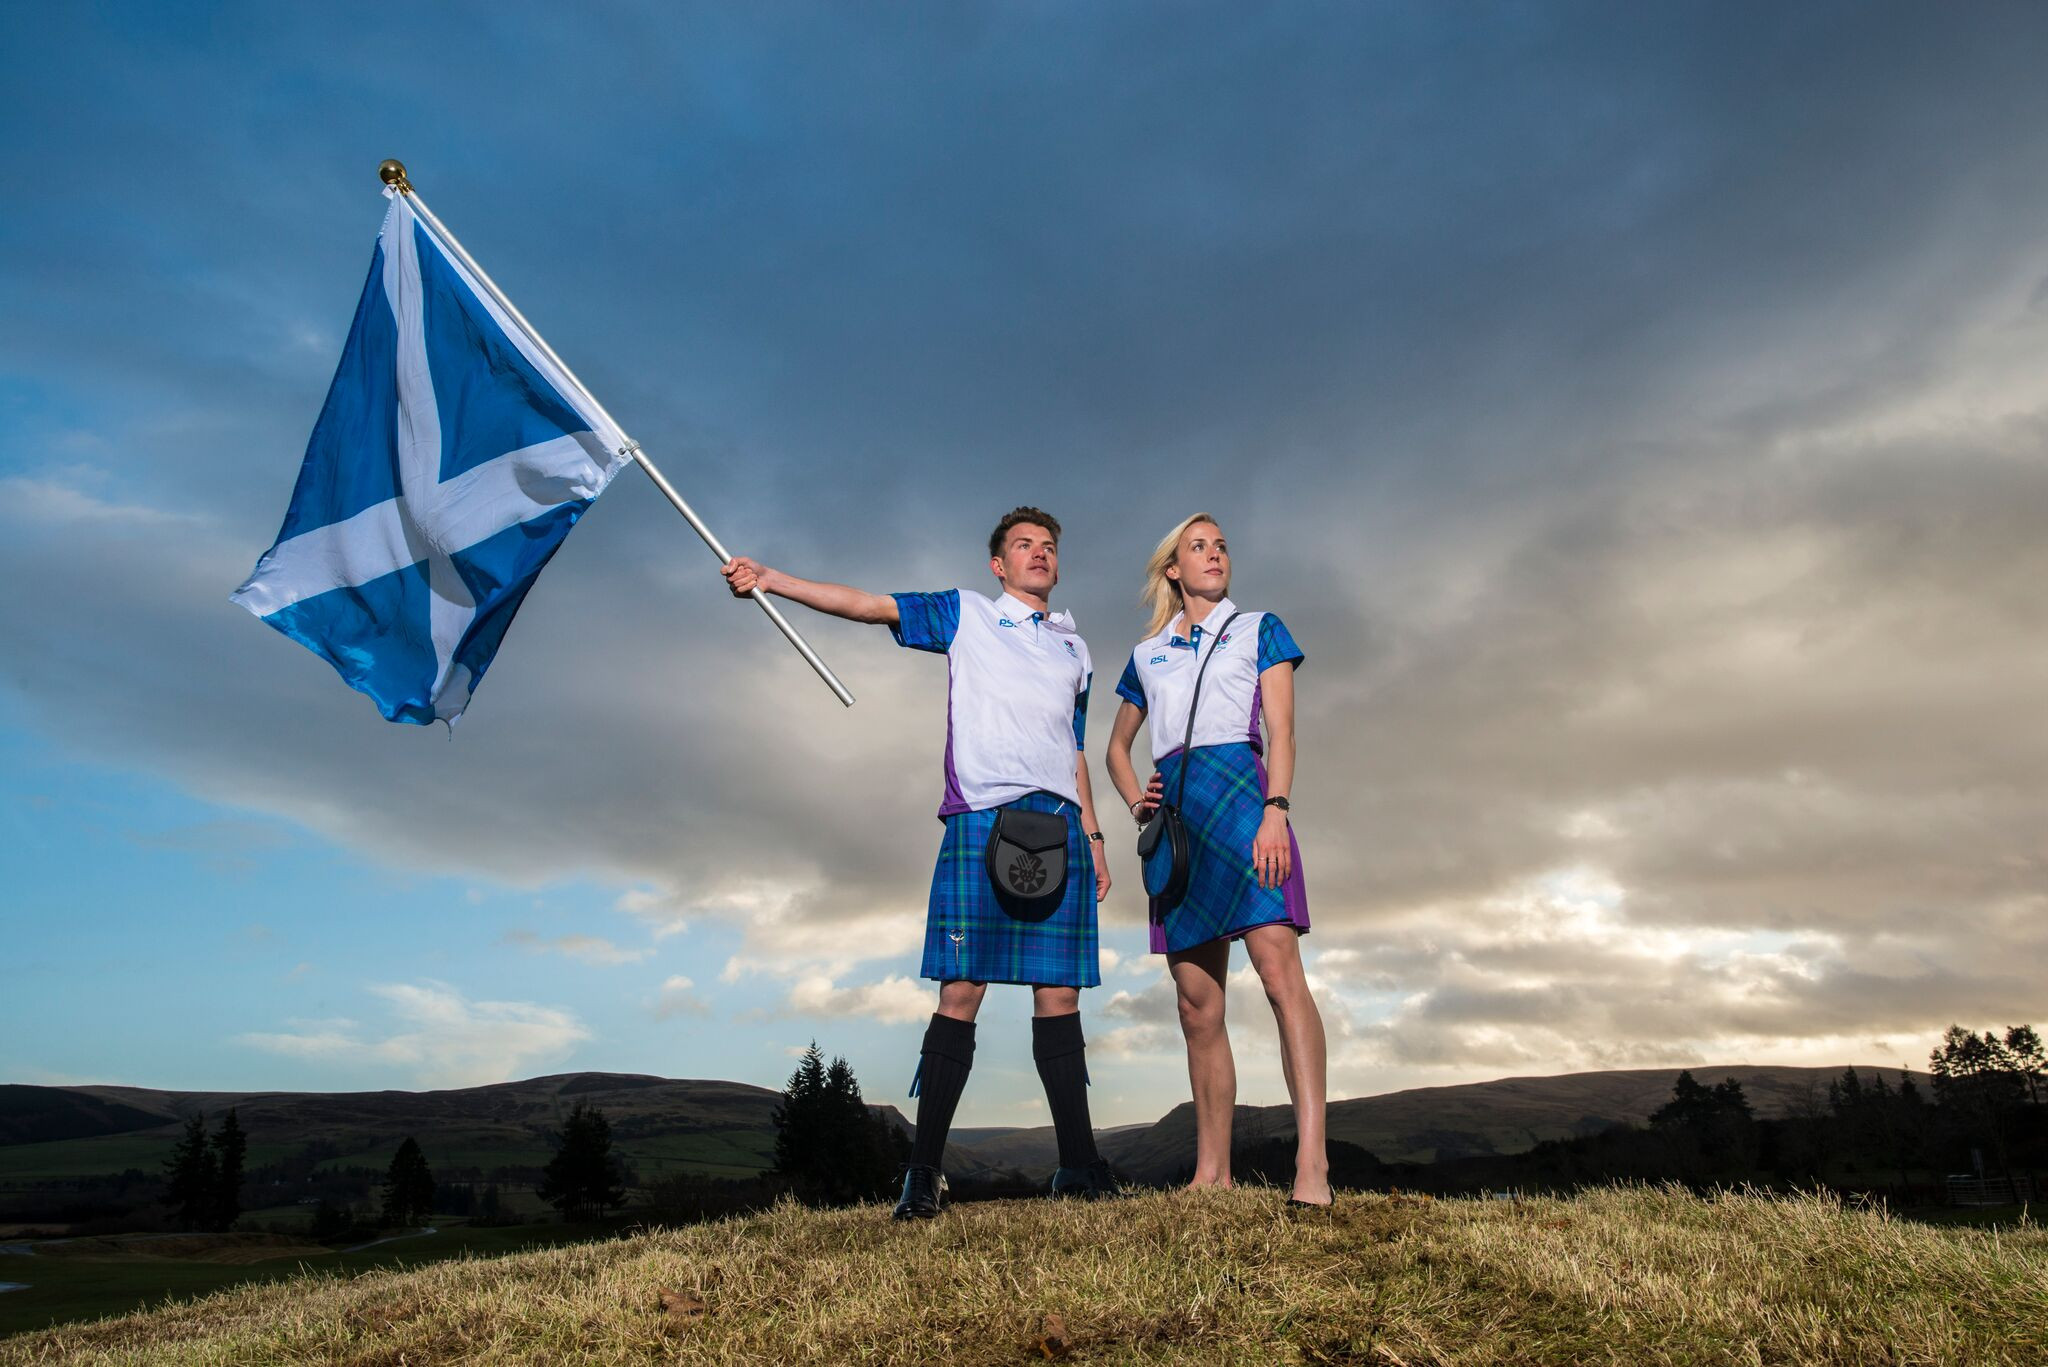 Team Scotland have released images of the uniform they will wear at the Commonwealth Games Opening Ceremony ©Team Scotland